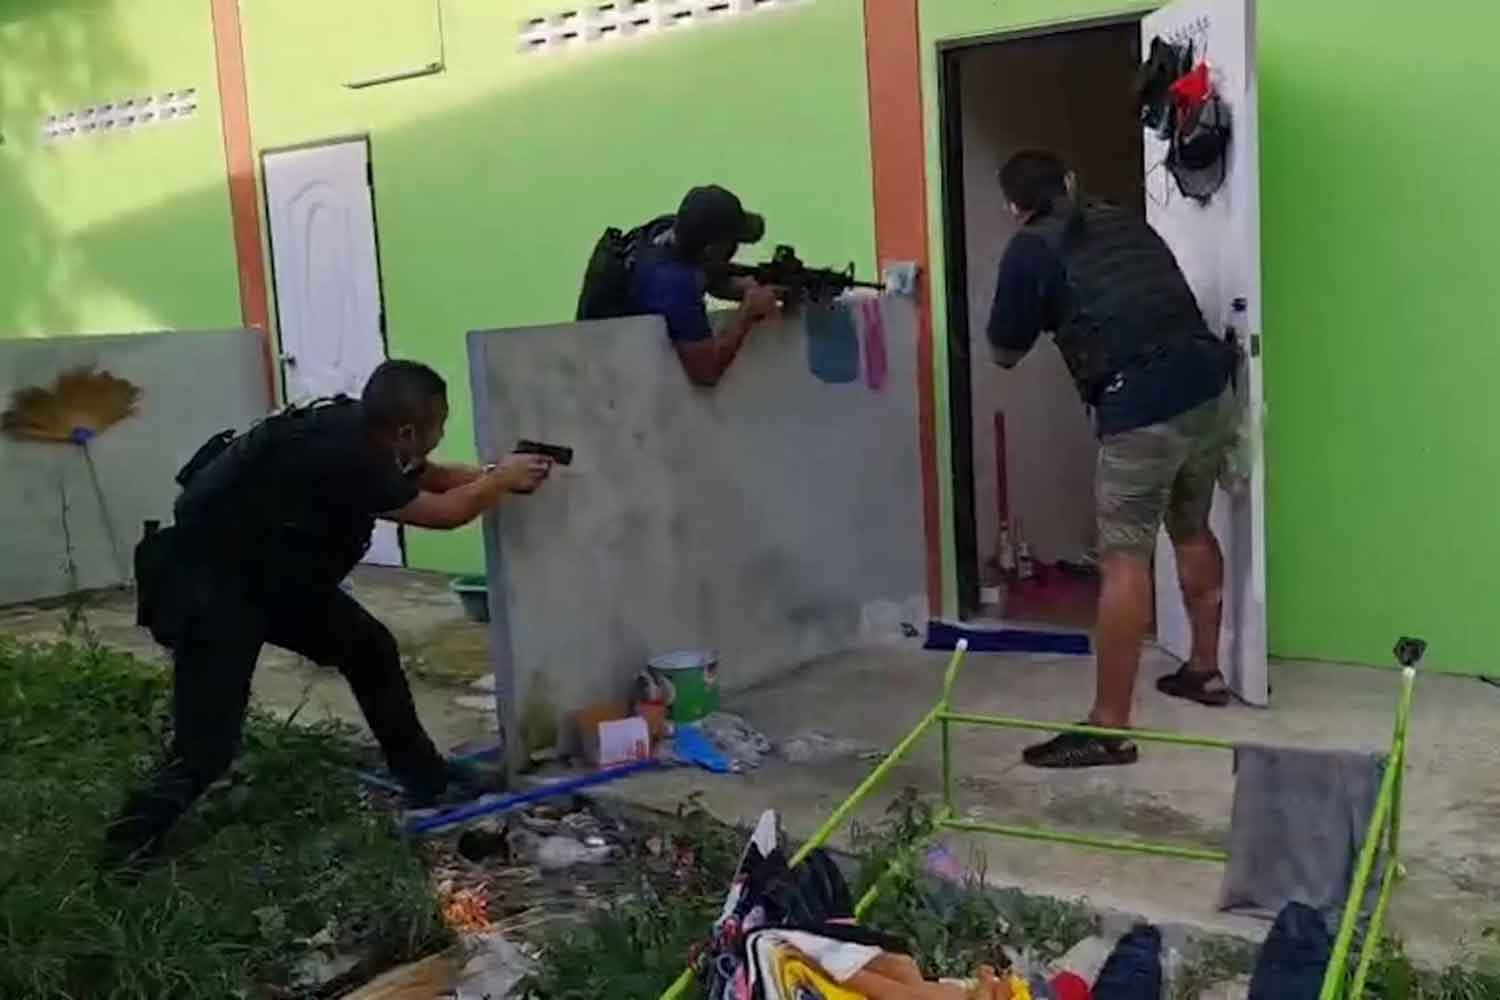 Crime Suppression Division police break into a room in Songkhla's Singha Nakhon district, rescue two hostages and arrest four alleged kidnappers, late Tuesday afternoon. (Photo: Assawin Pakkawan)